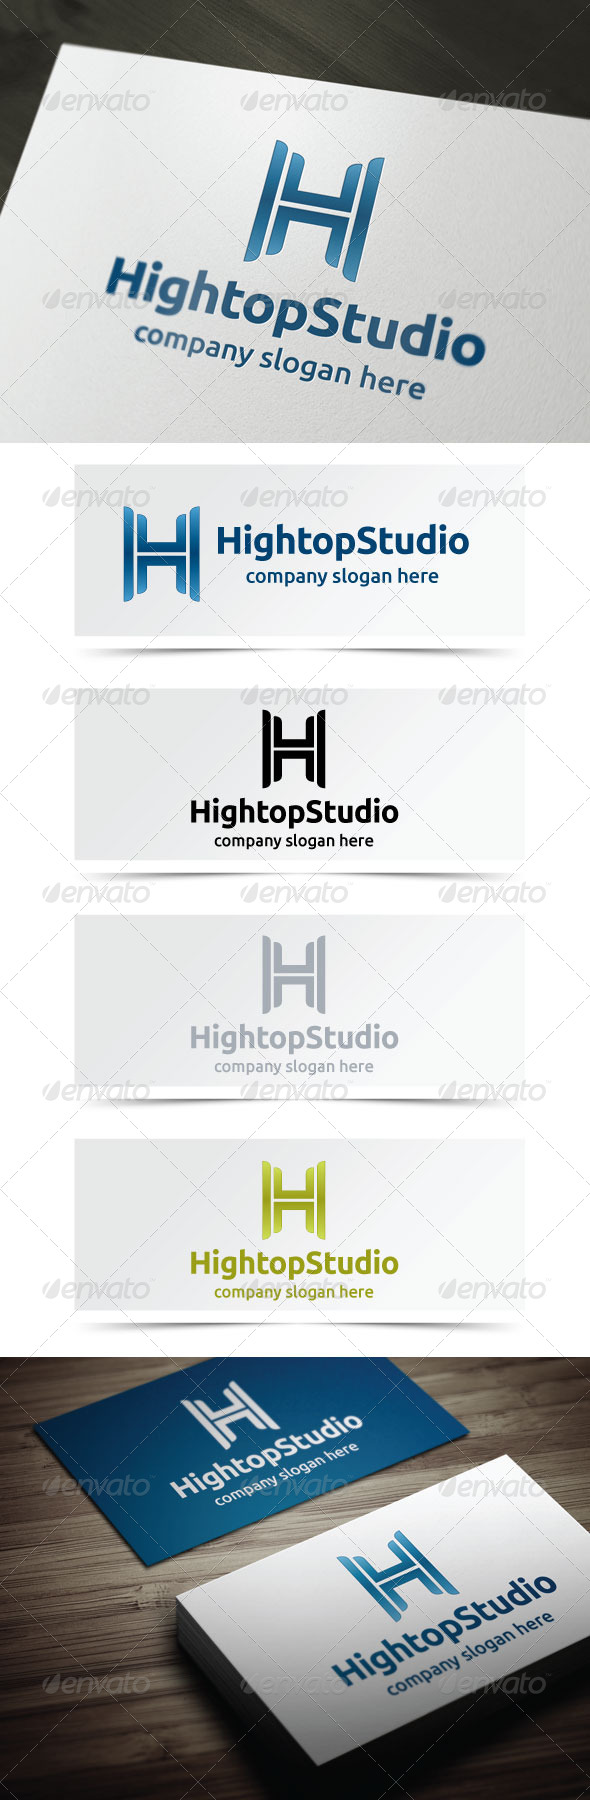 Hightop Studio - Letters Logo Templates